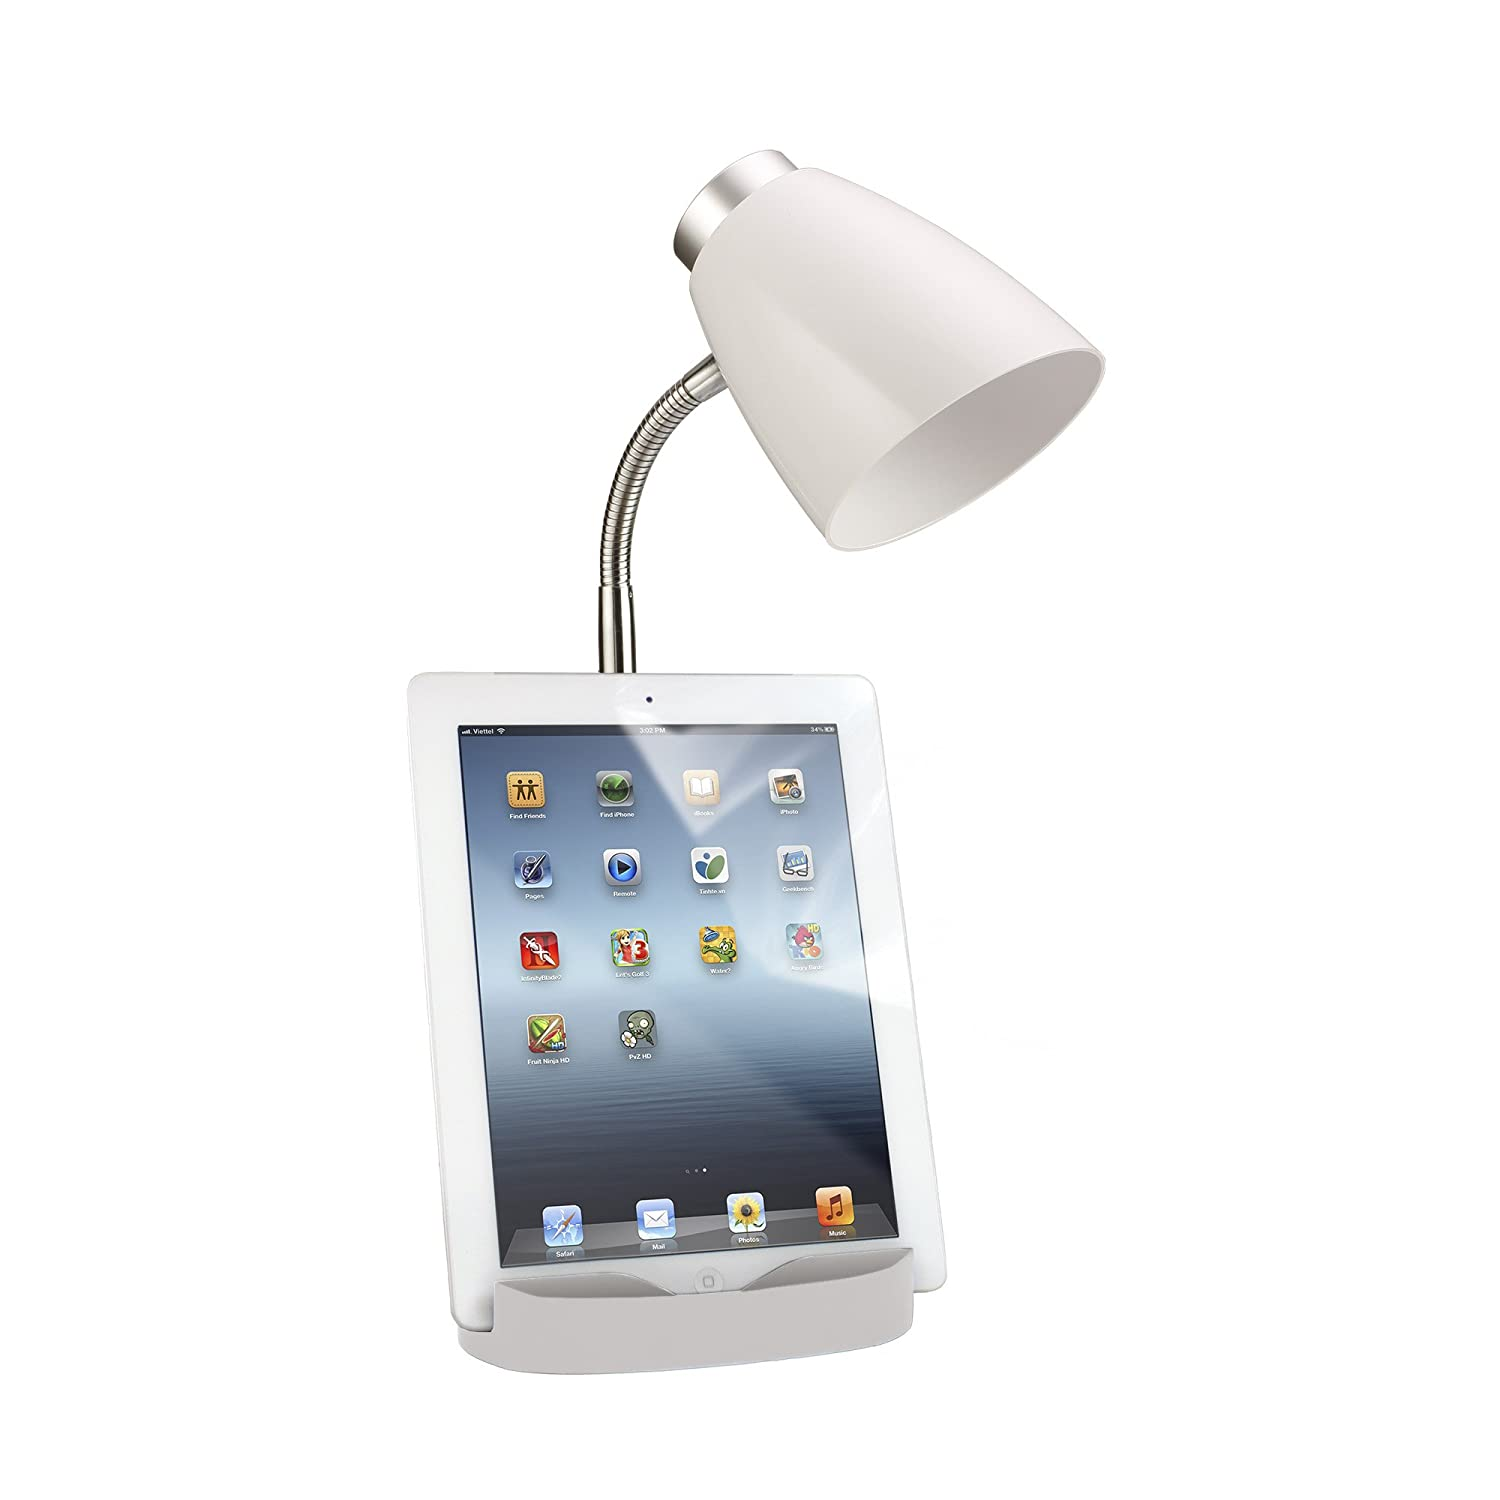 limelights ld1002 wht gooseneck organizer desk lamp with ipad